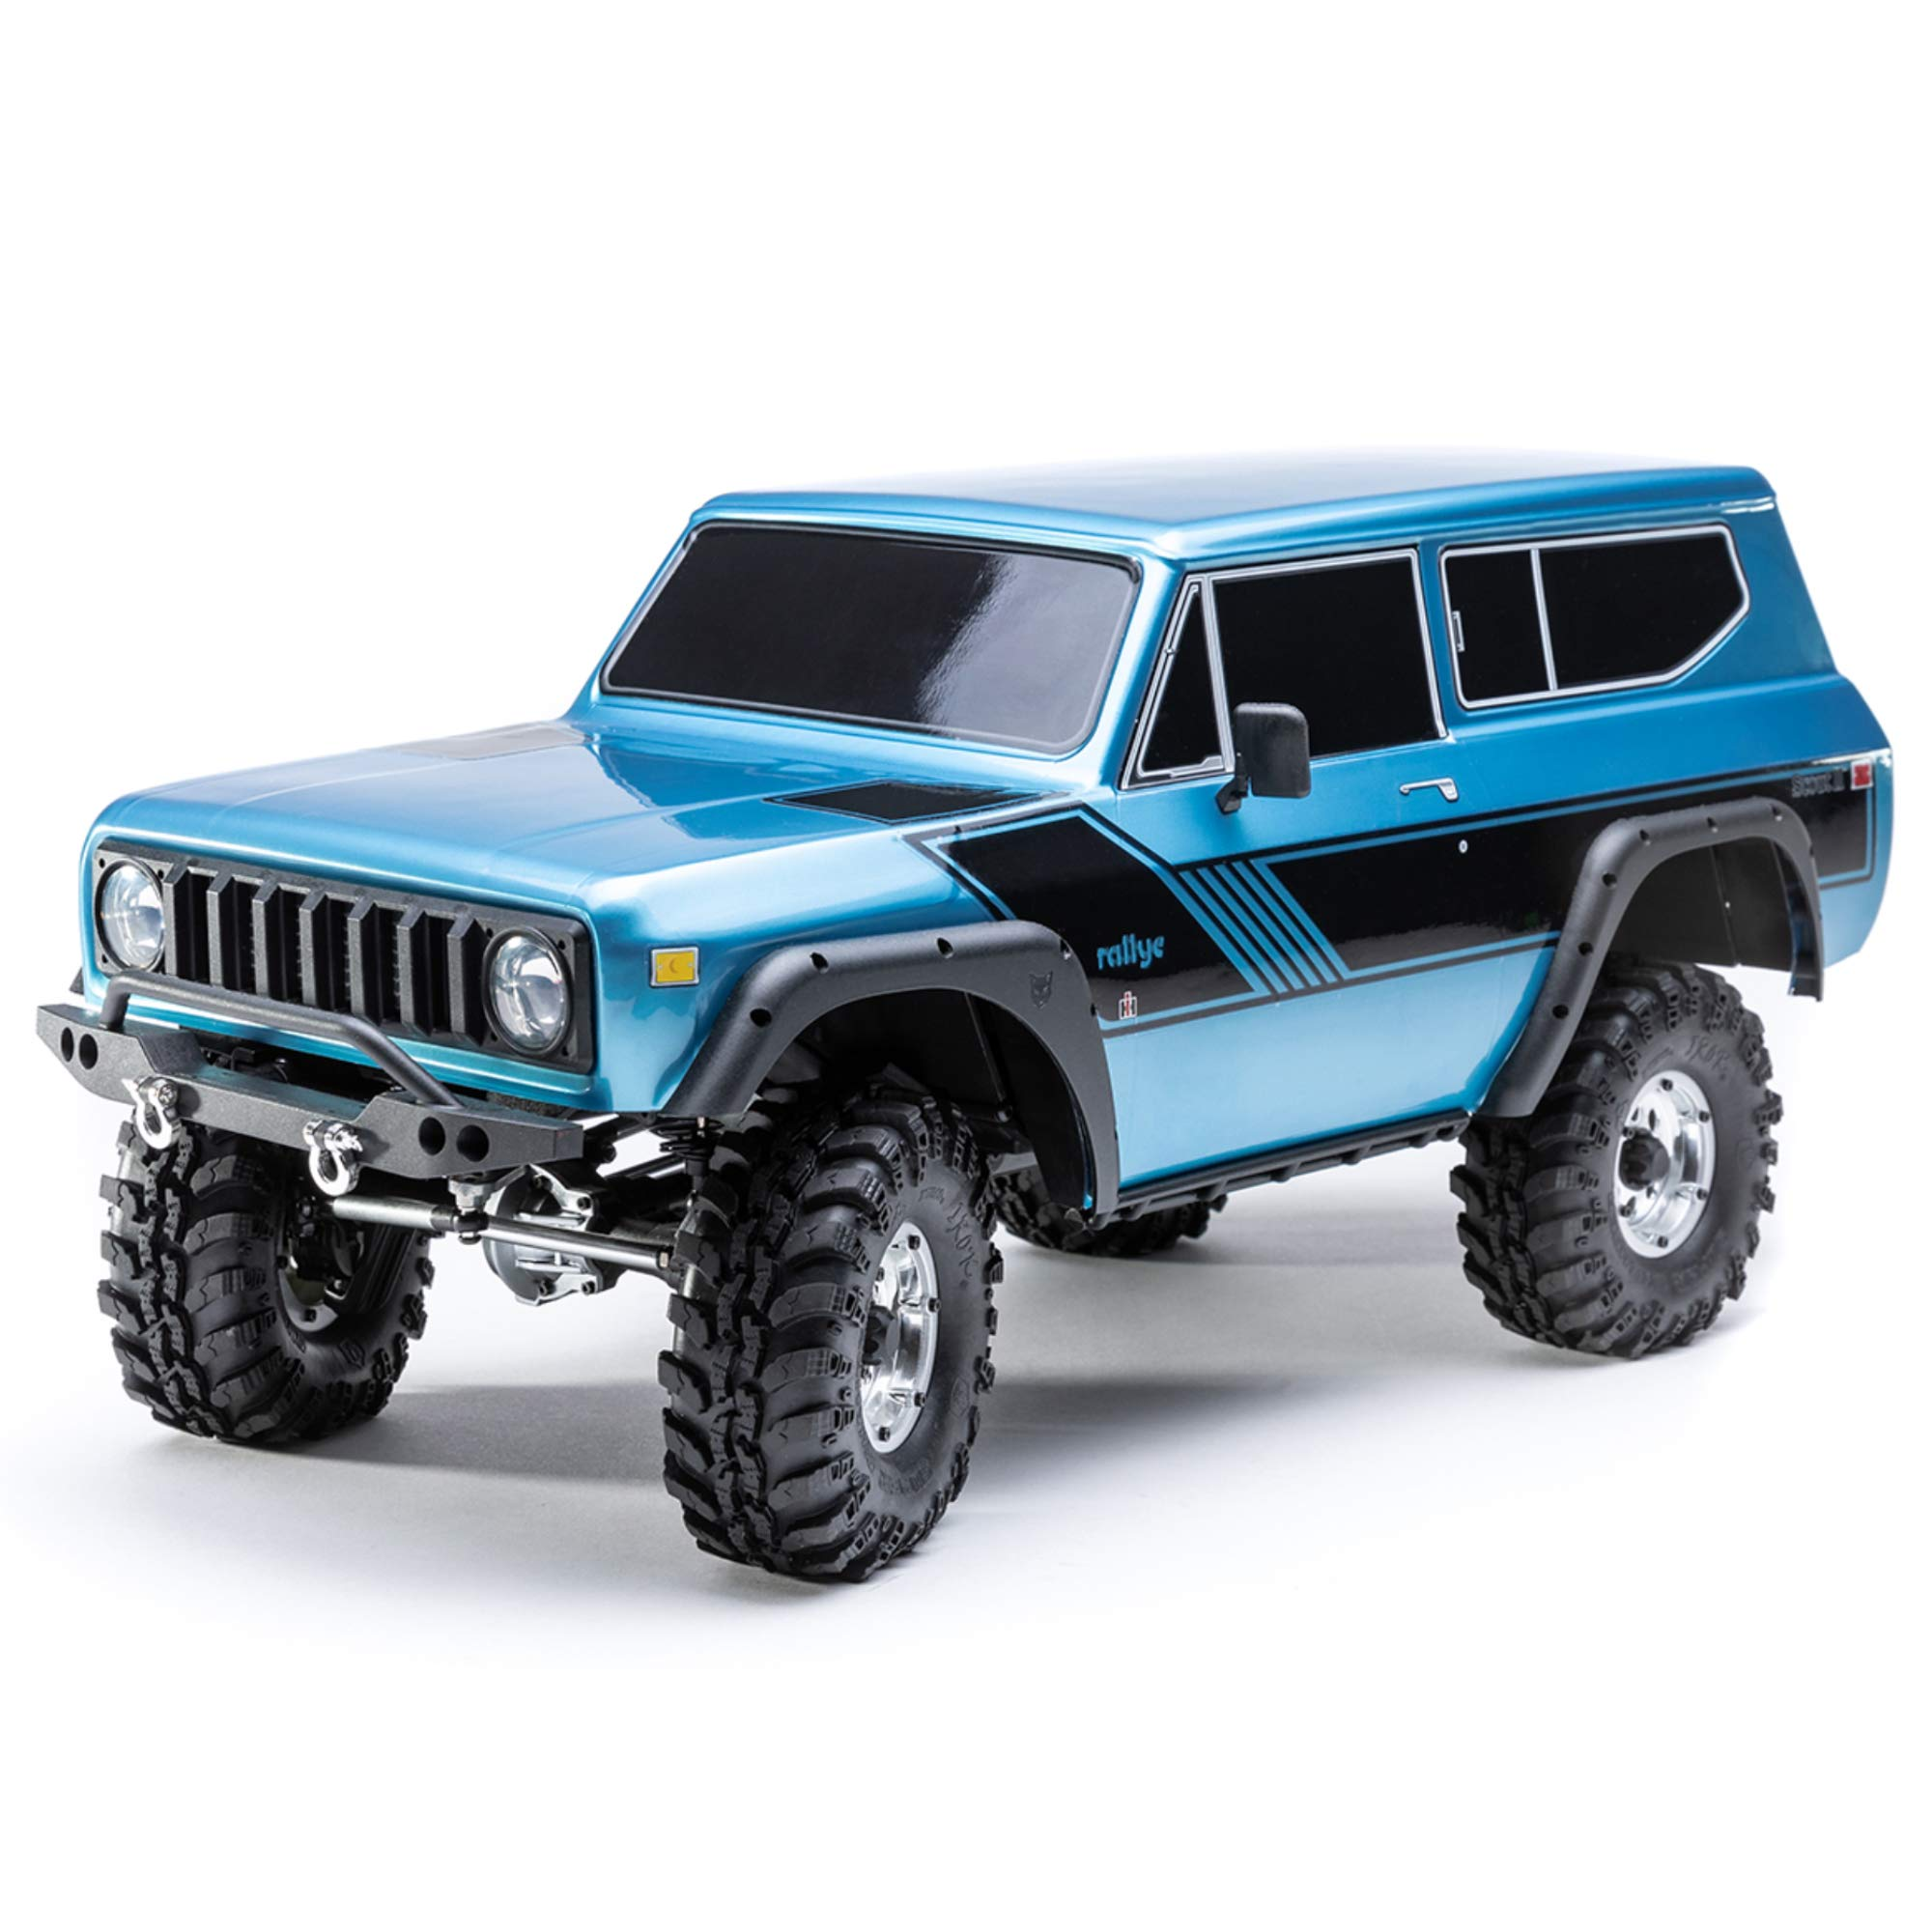 Redcat Racing Blue GEN8 Scout II Scale Rock Crawler 4WD Off Road with Portal Axles Licensed Body & More